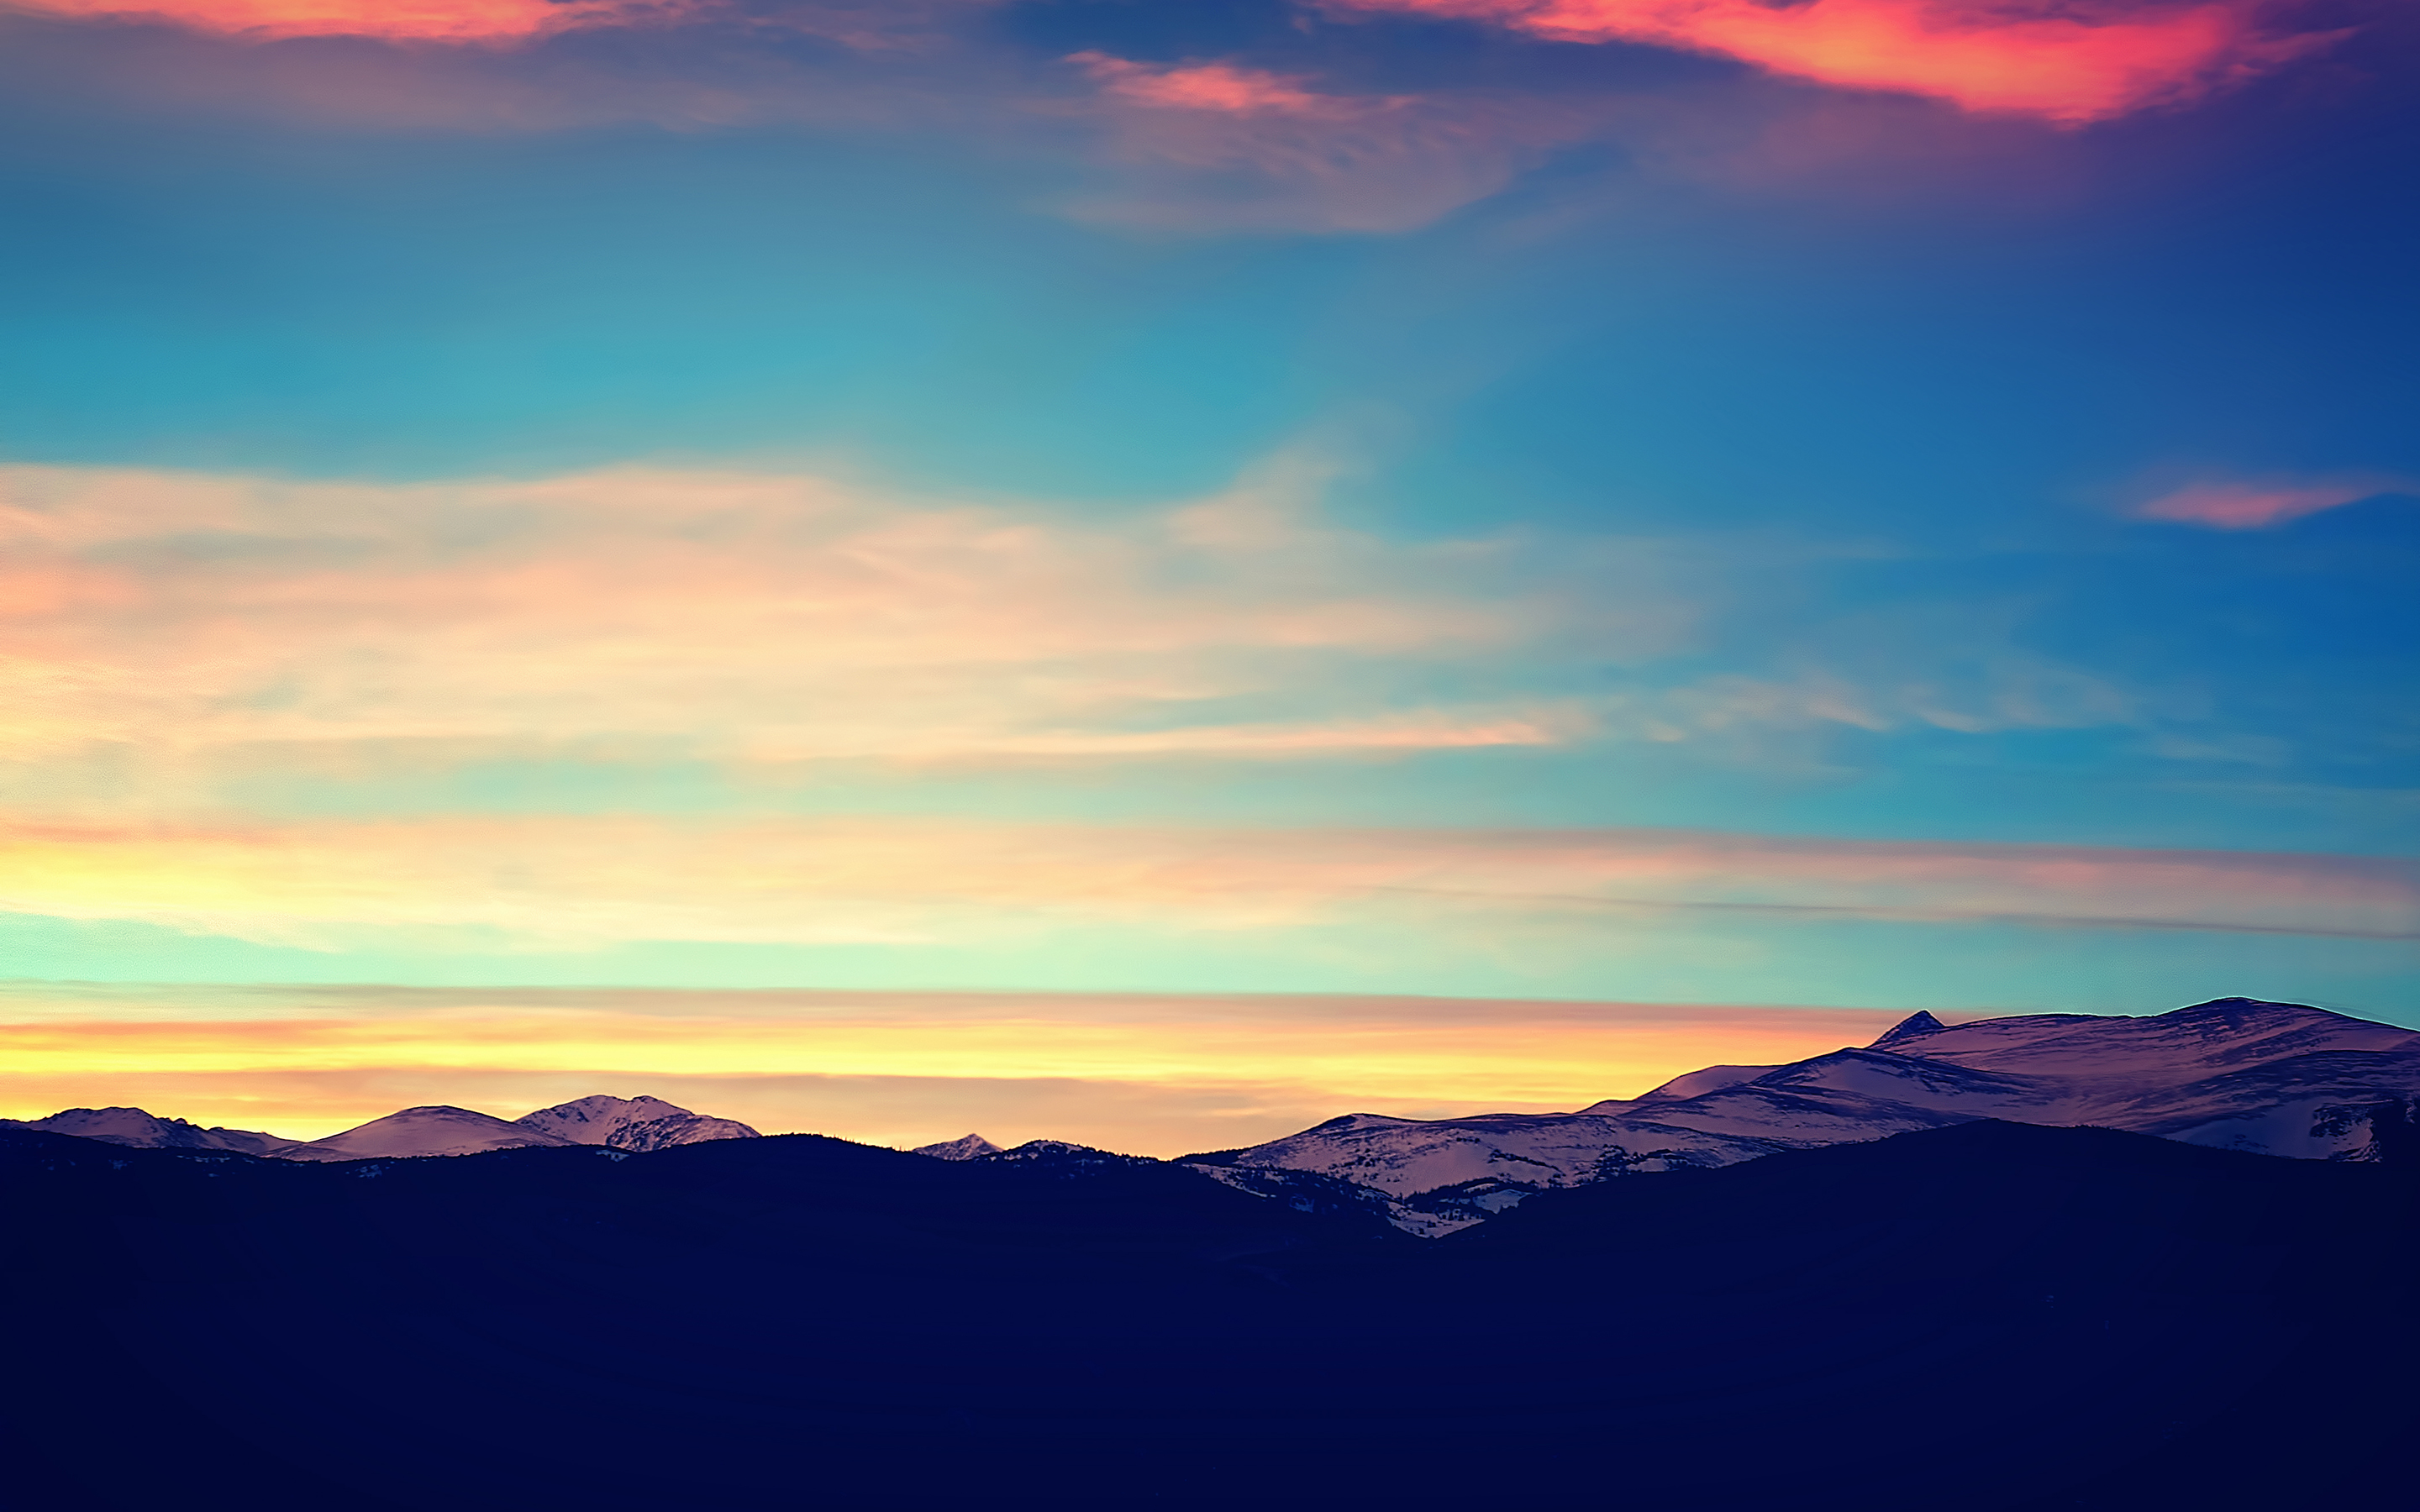 Sunset over the mountains in Colorado